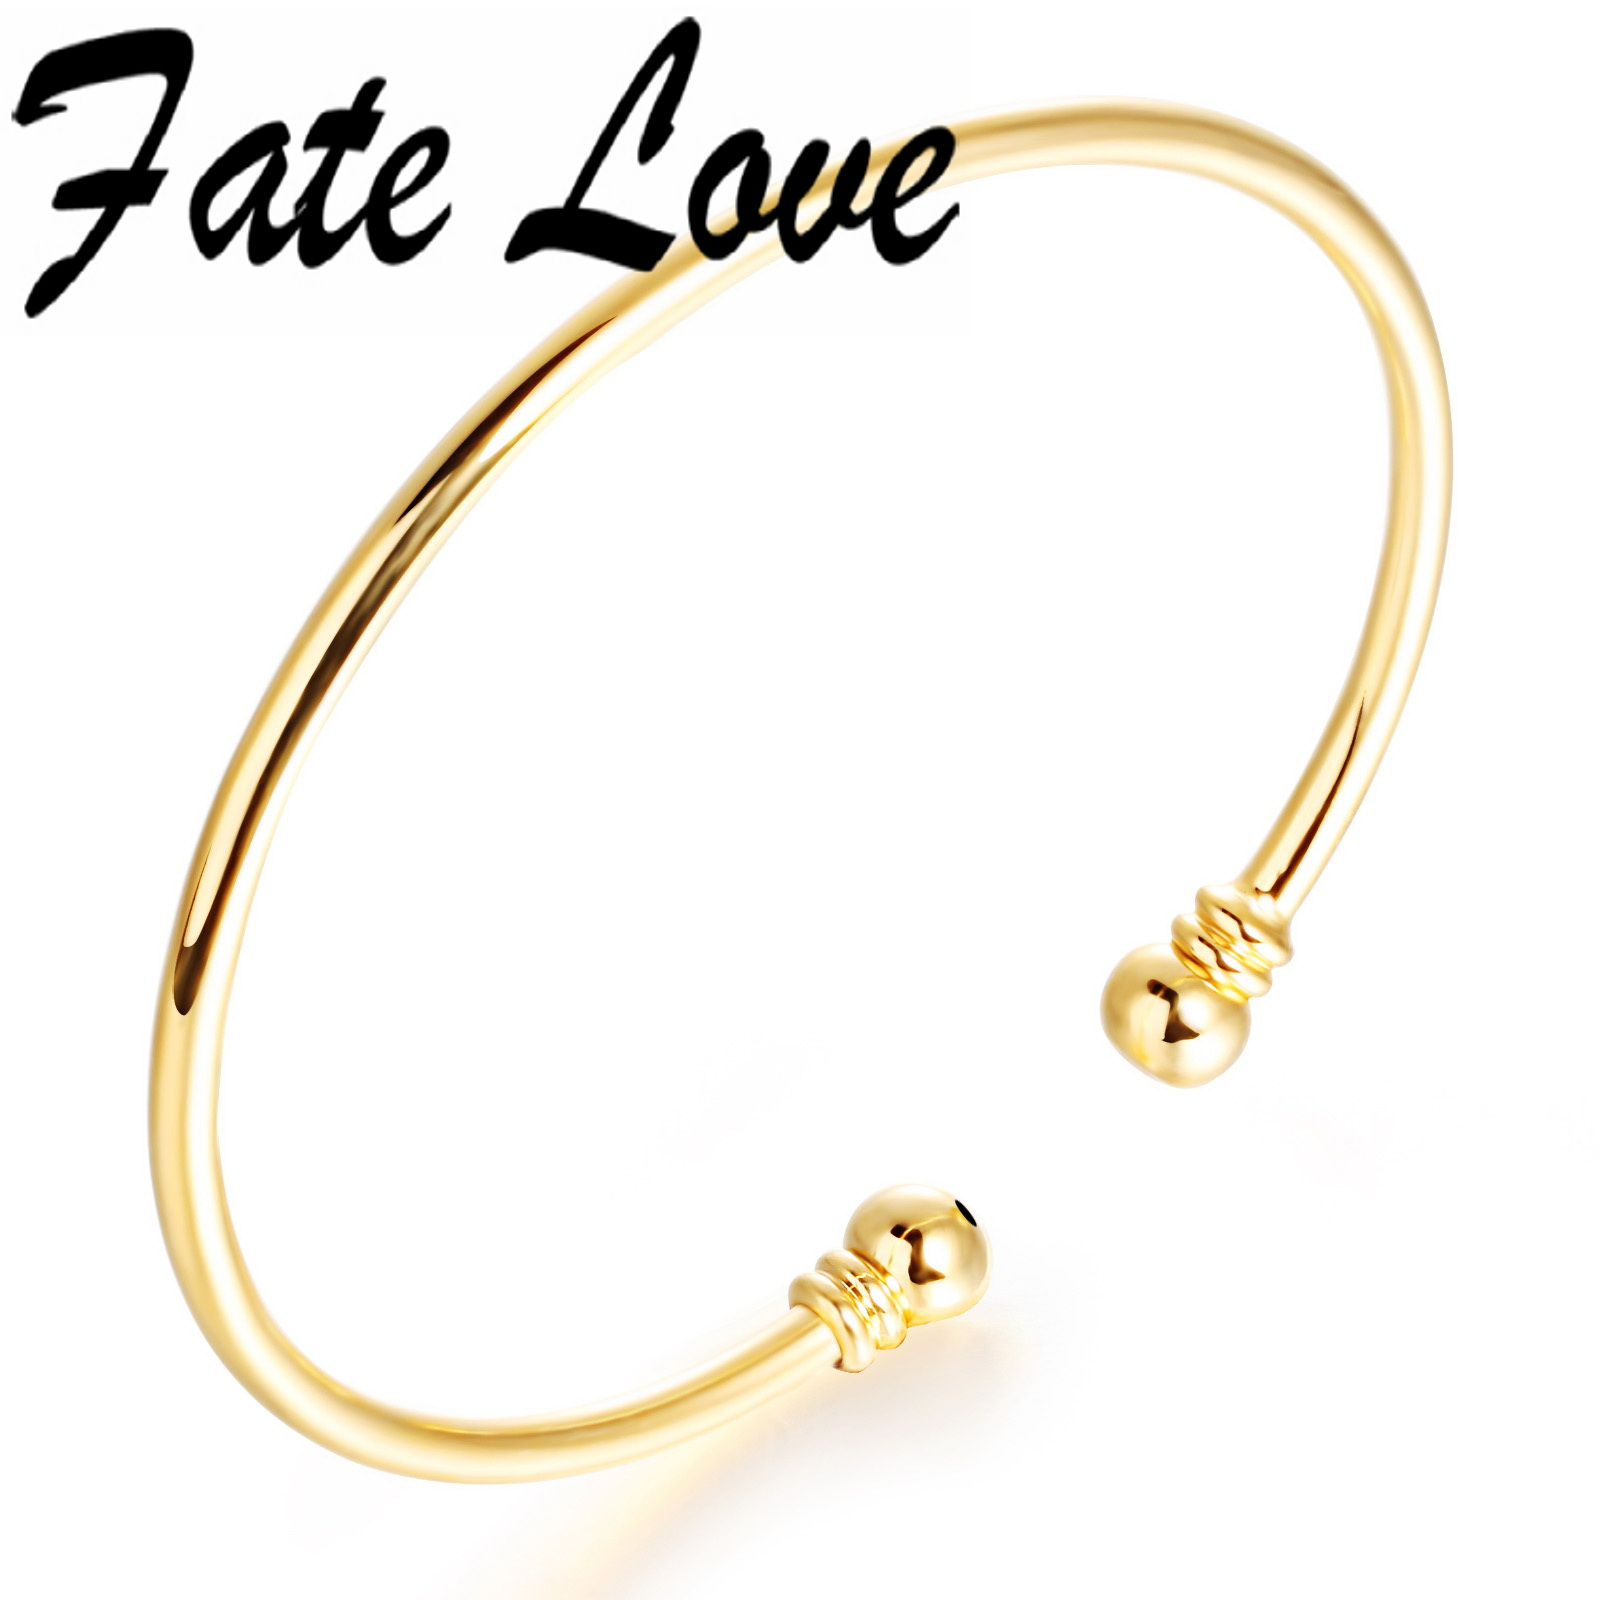 Fate Love Fashion Jewelry Thin Cuff Bracelets Bangles Gold Simple Open Bangle for Elegant Lady Adjustable Birthday Gift FL456